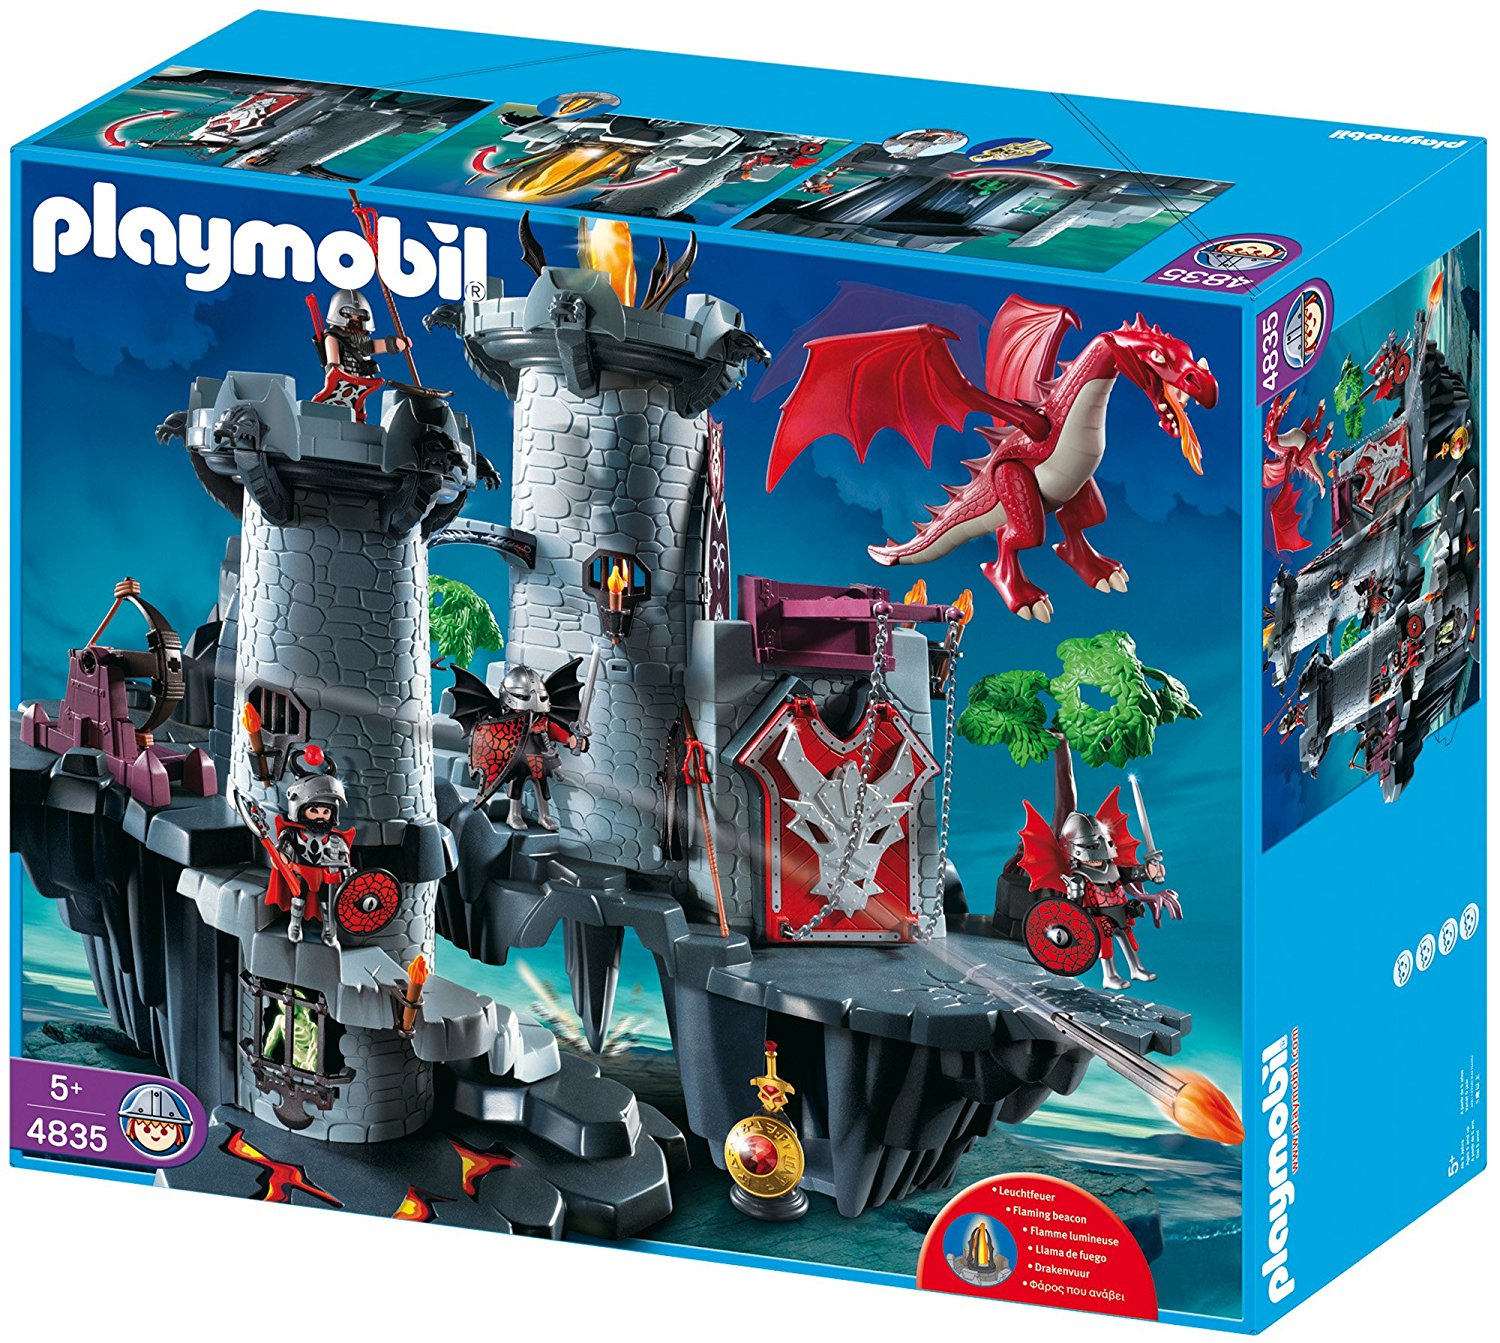 Citadelle chevalier du dragon Playmobil 4835